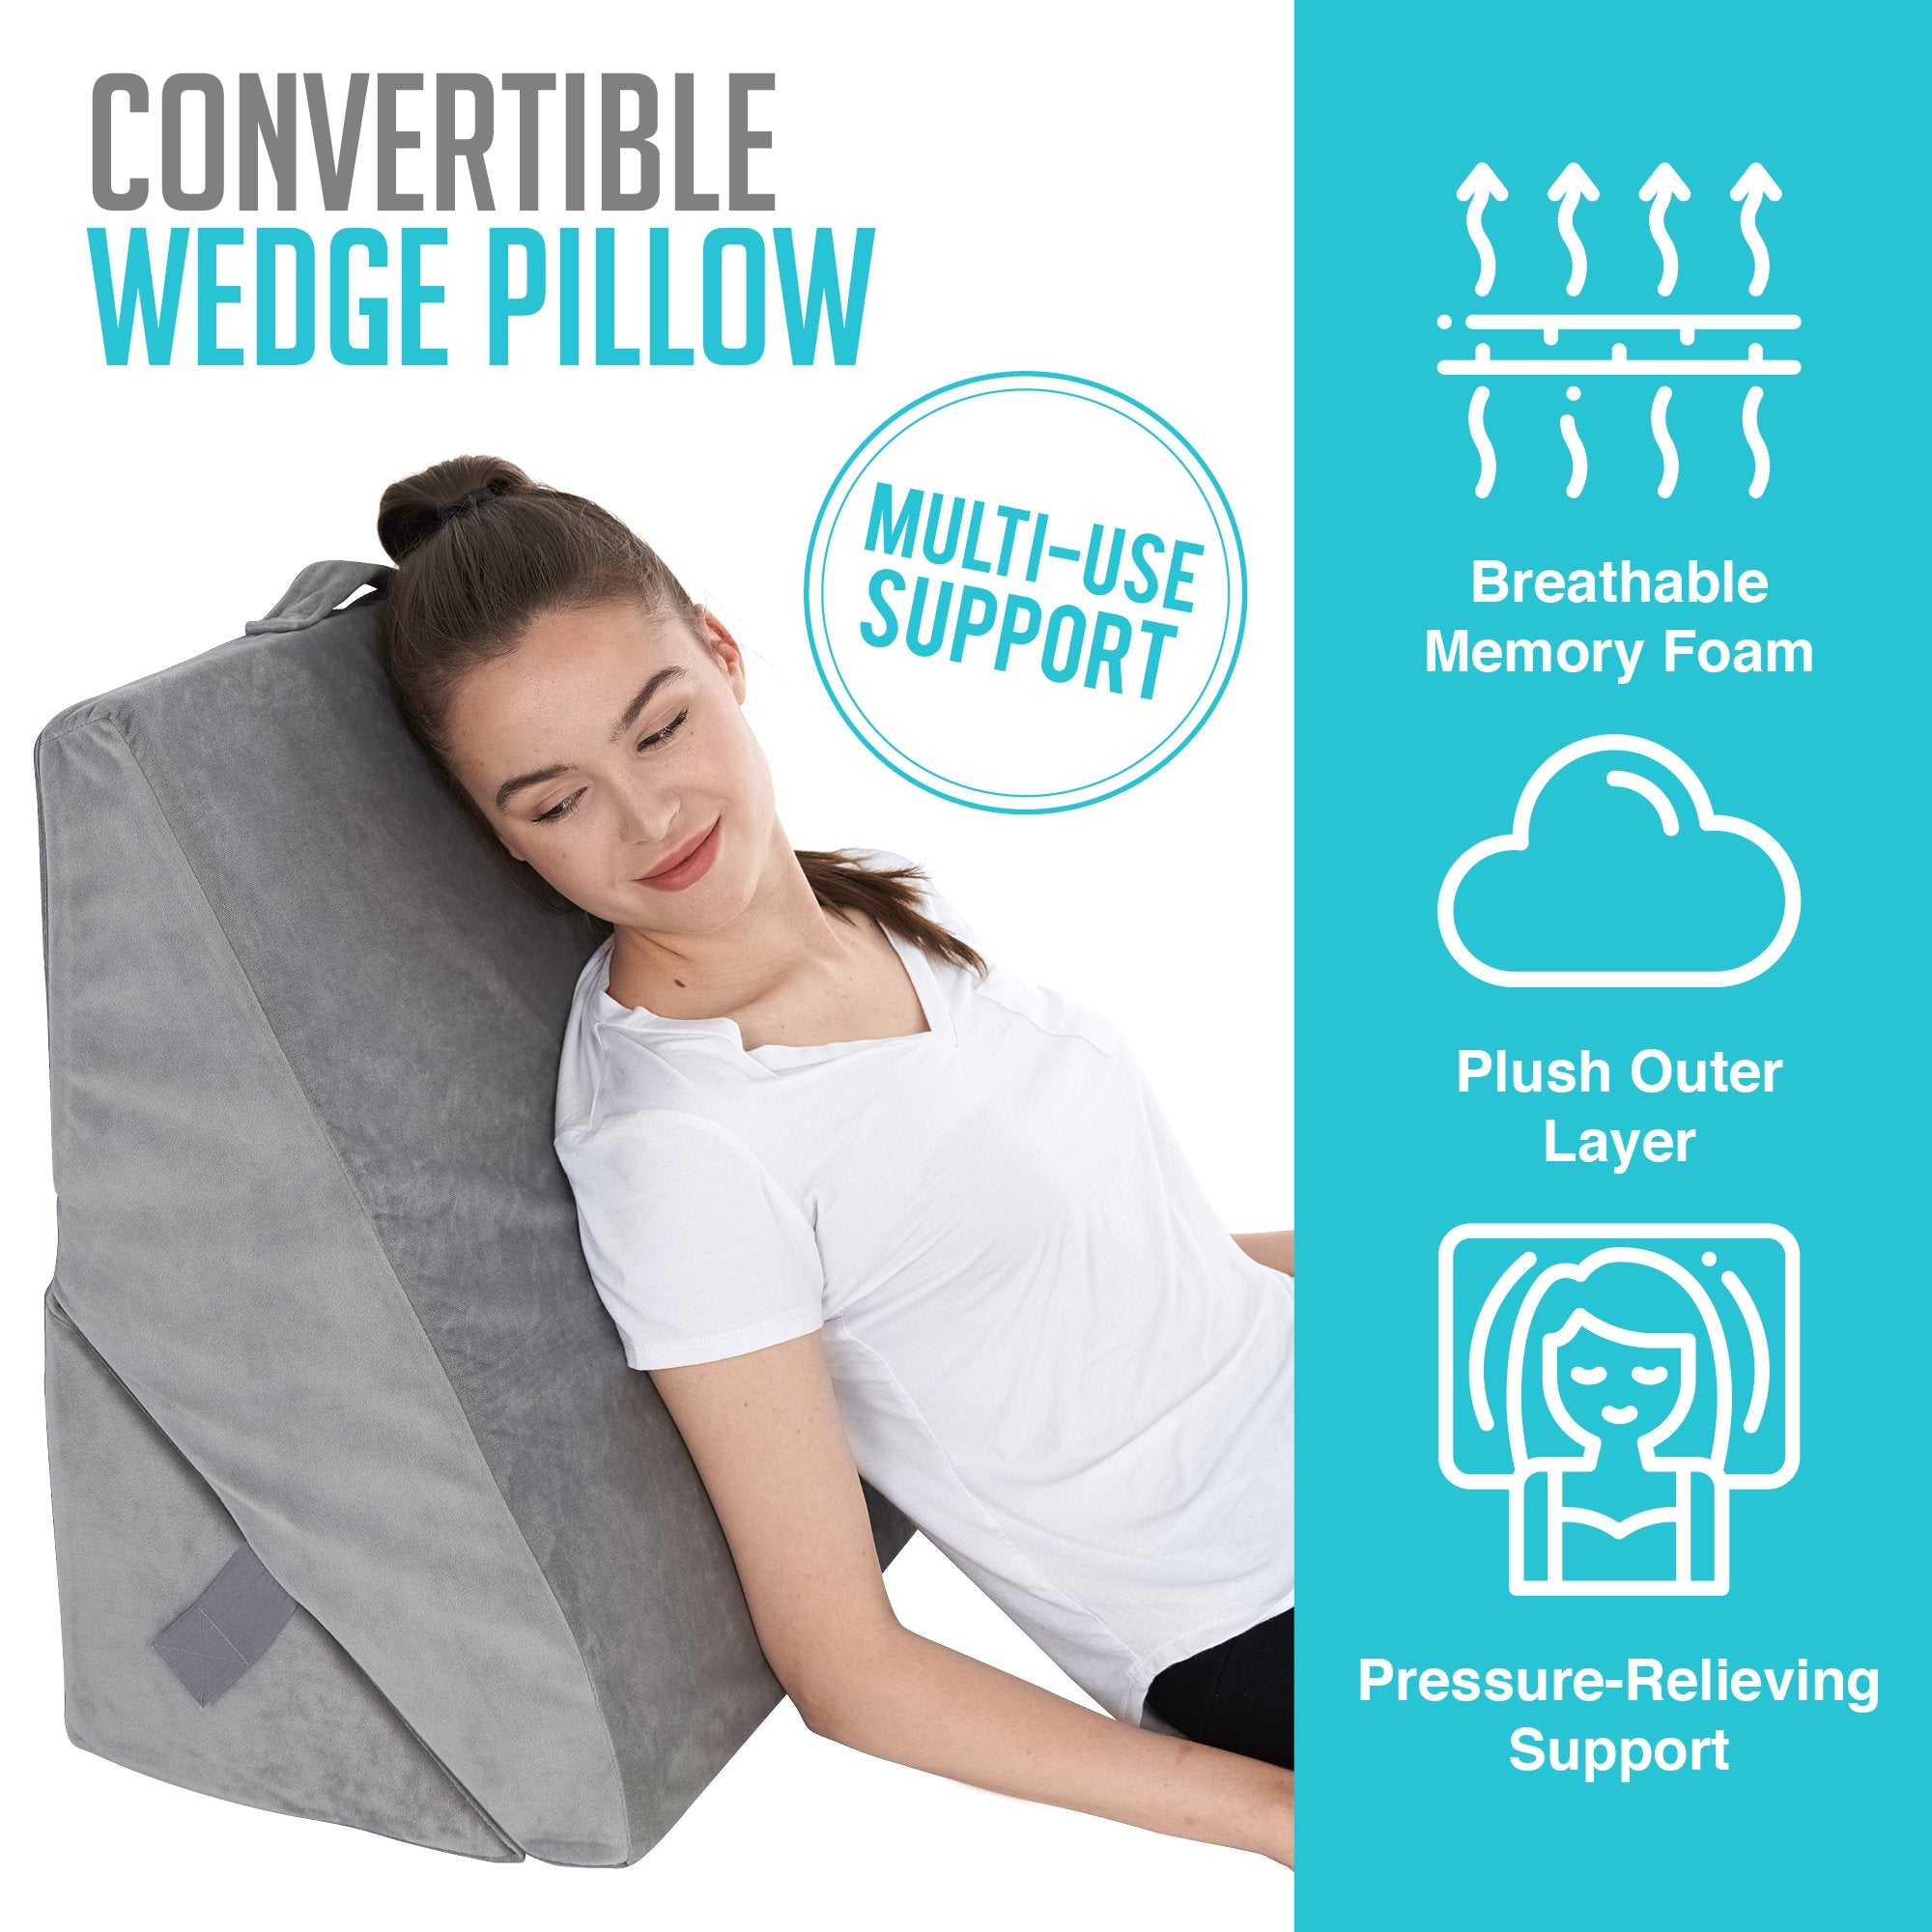 Bed Wedge Pillow, Back Support Memory Foam - Adjustable & Folding Incline Cushion for Anti Snoring, Heartburn - Washable Cover